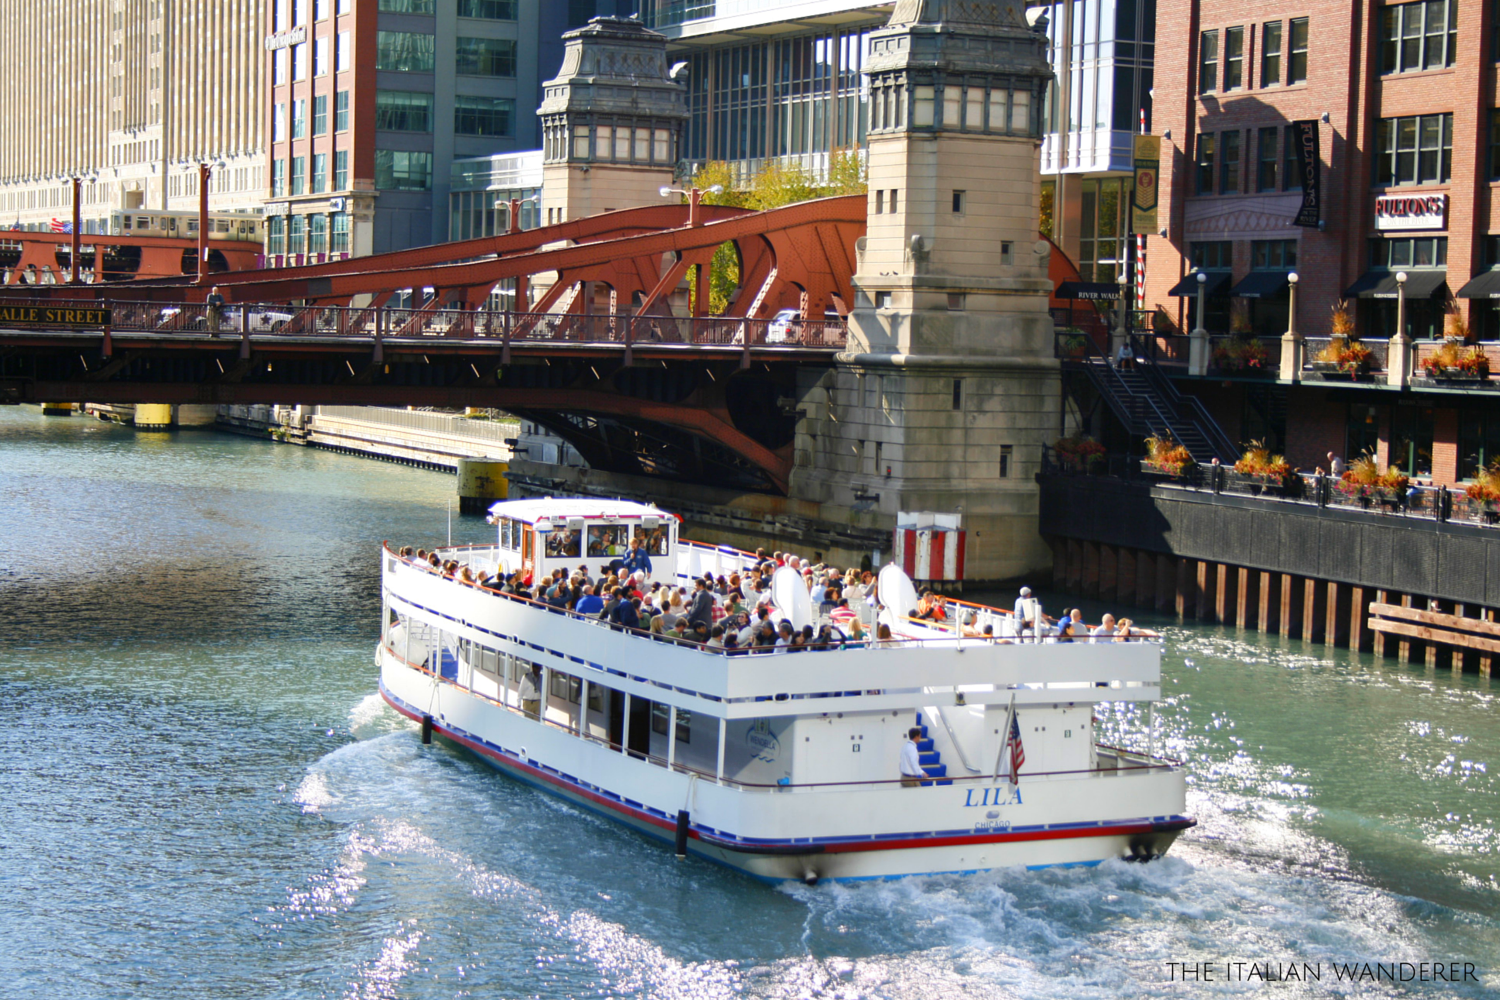 Chicago, a ferry tour is one of the best way to visit the city